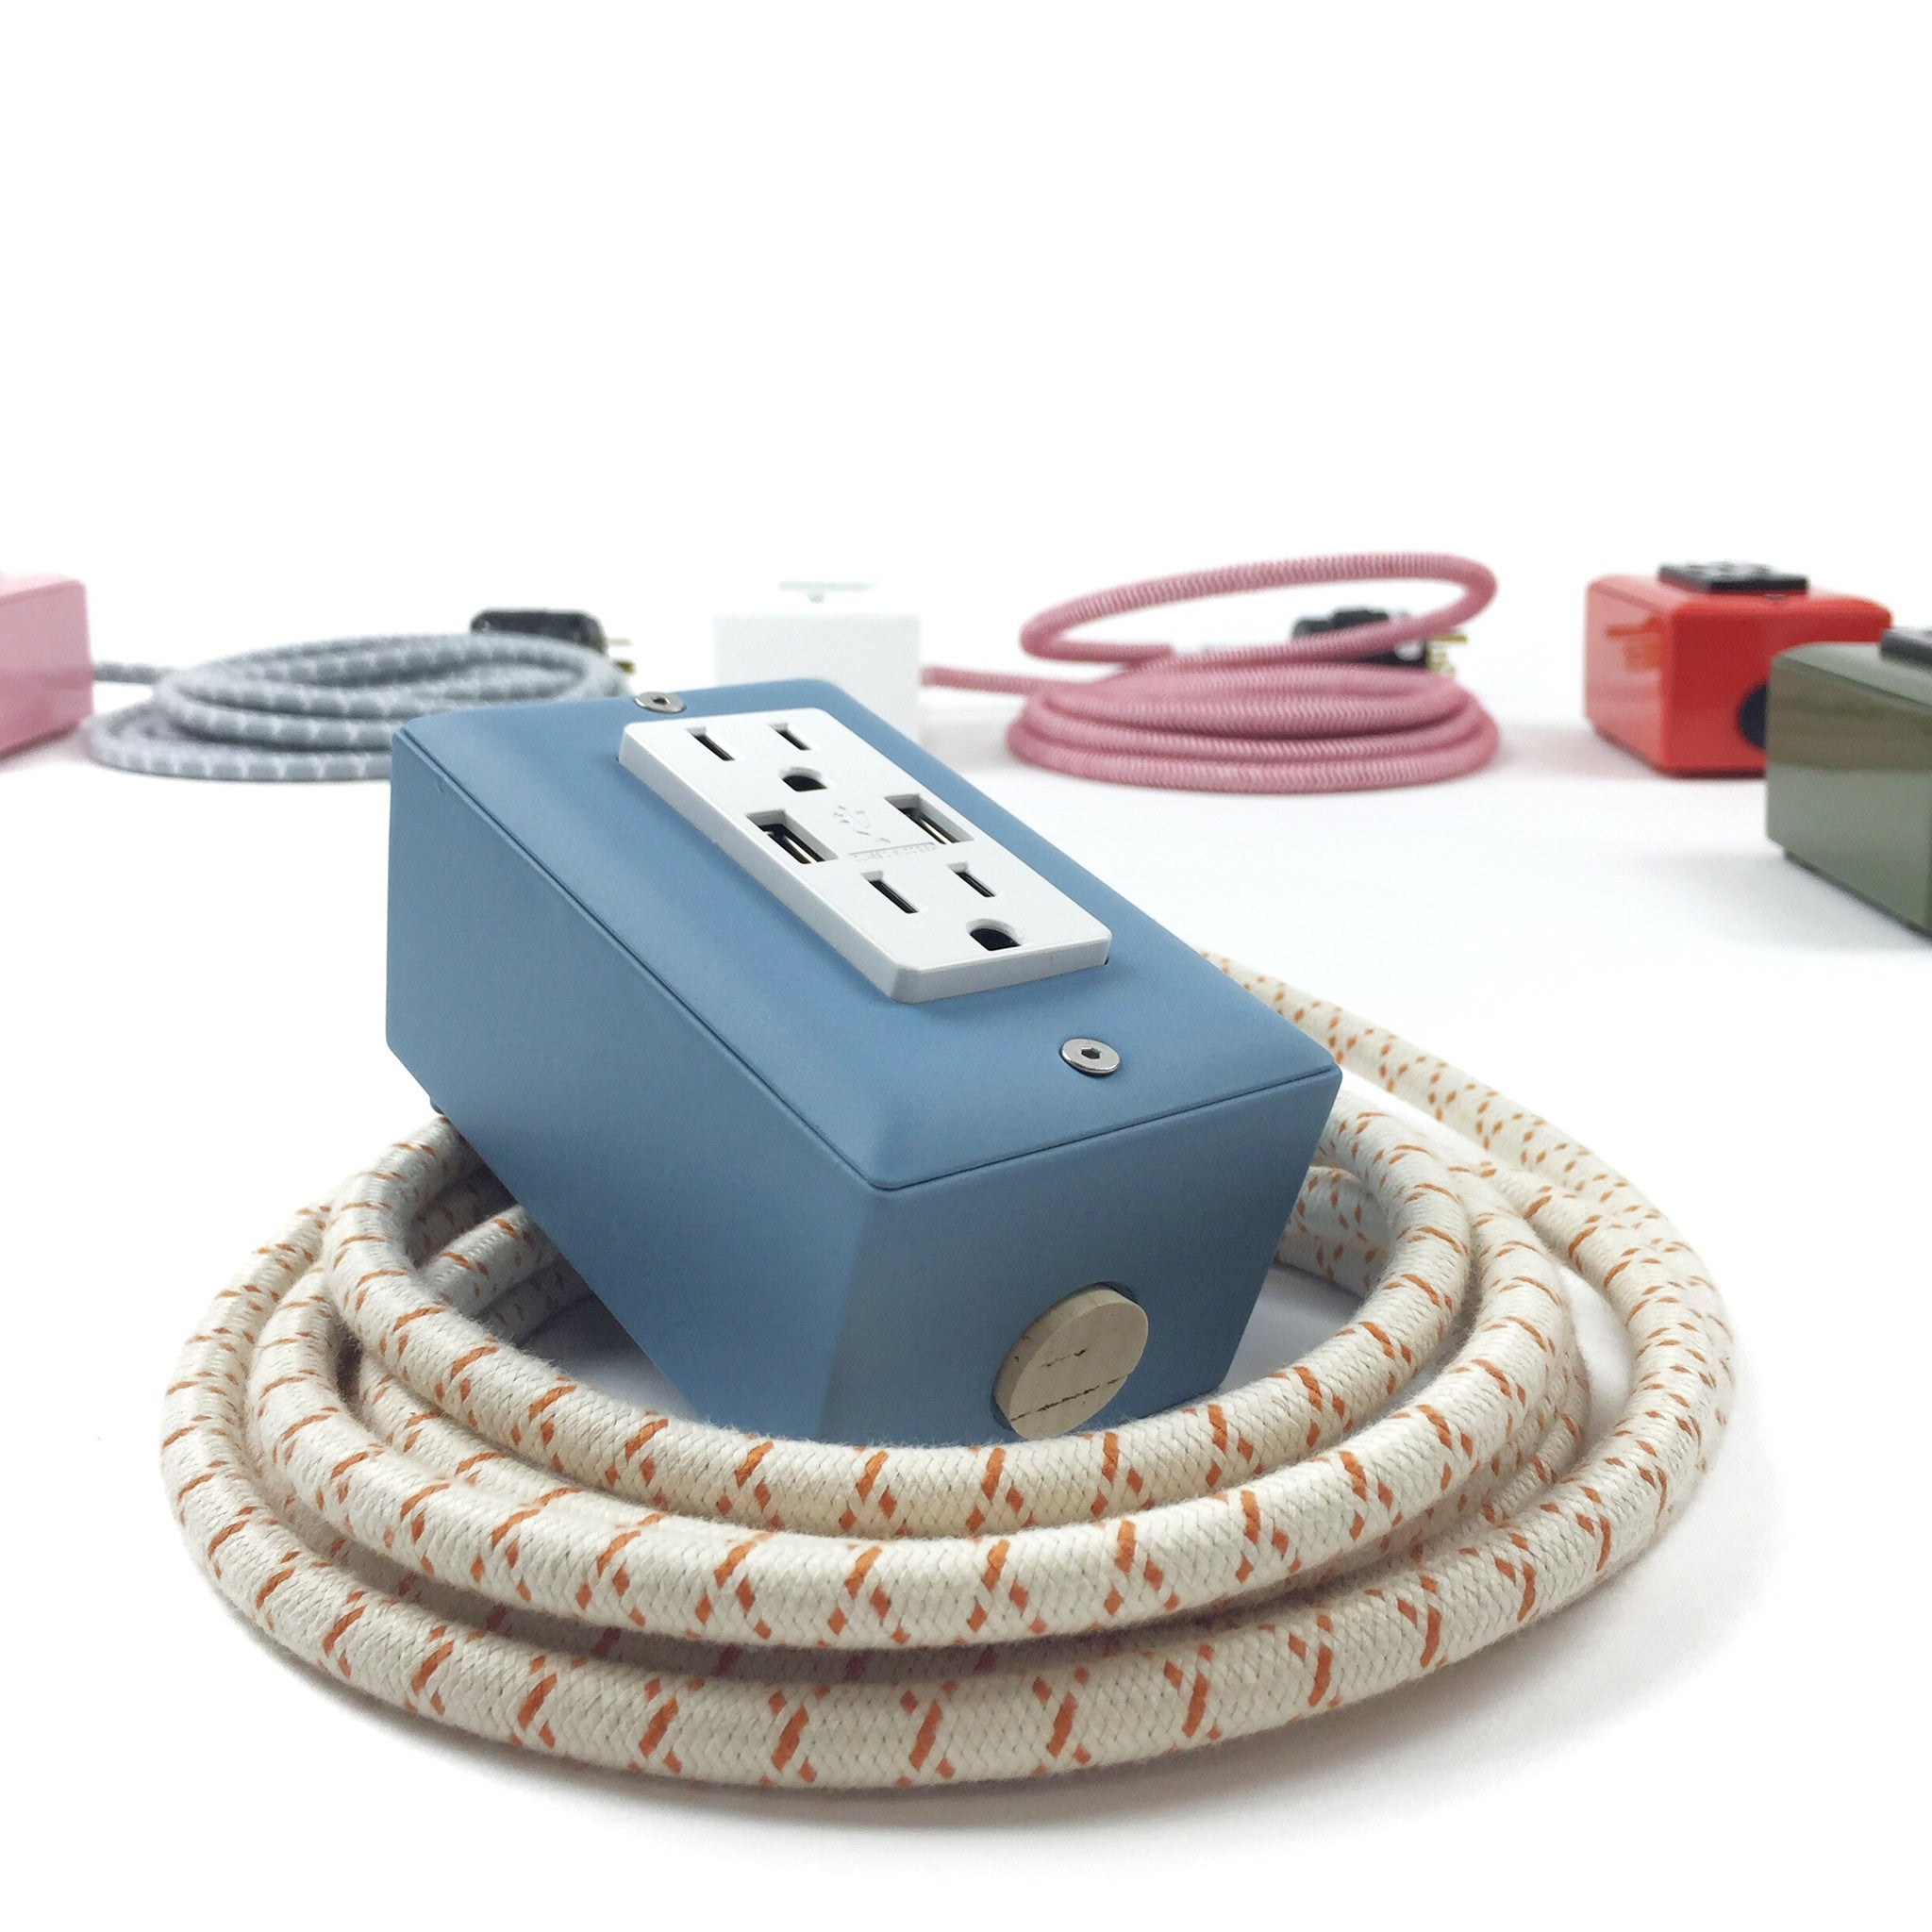 The First Smart Chip Extension Cord - 12' Extō Dual-USB, Dual-Outlet - Martha Blue